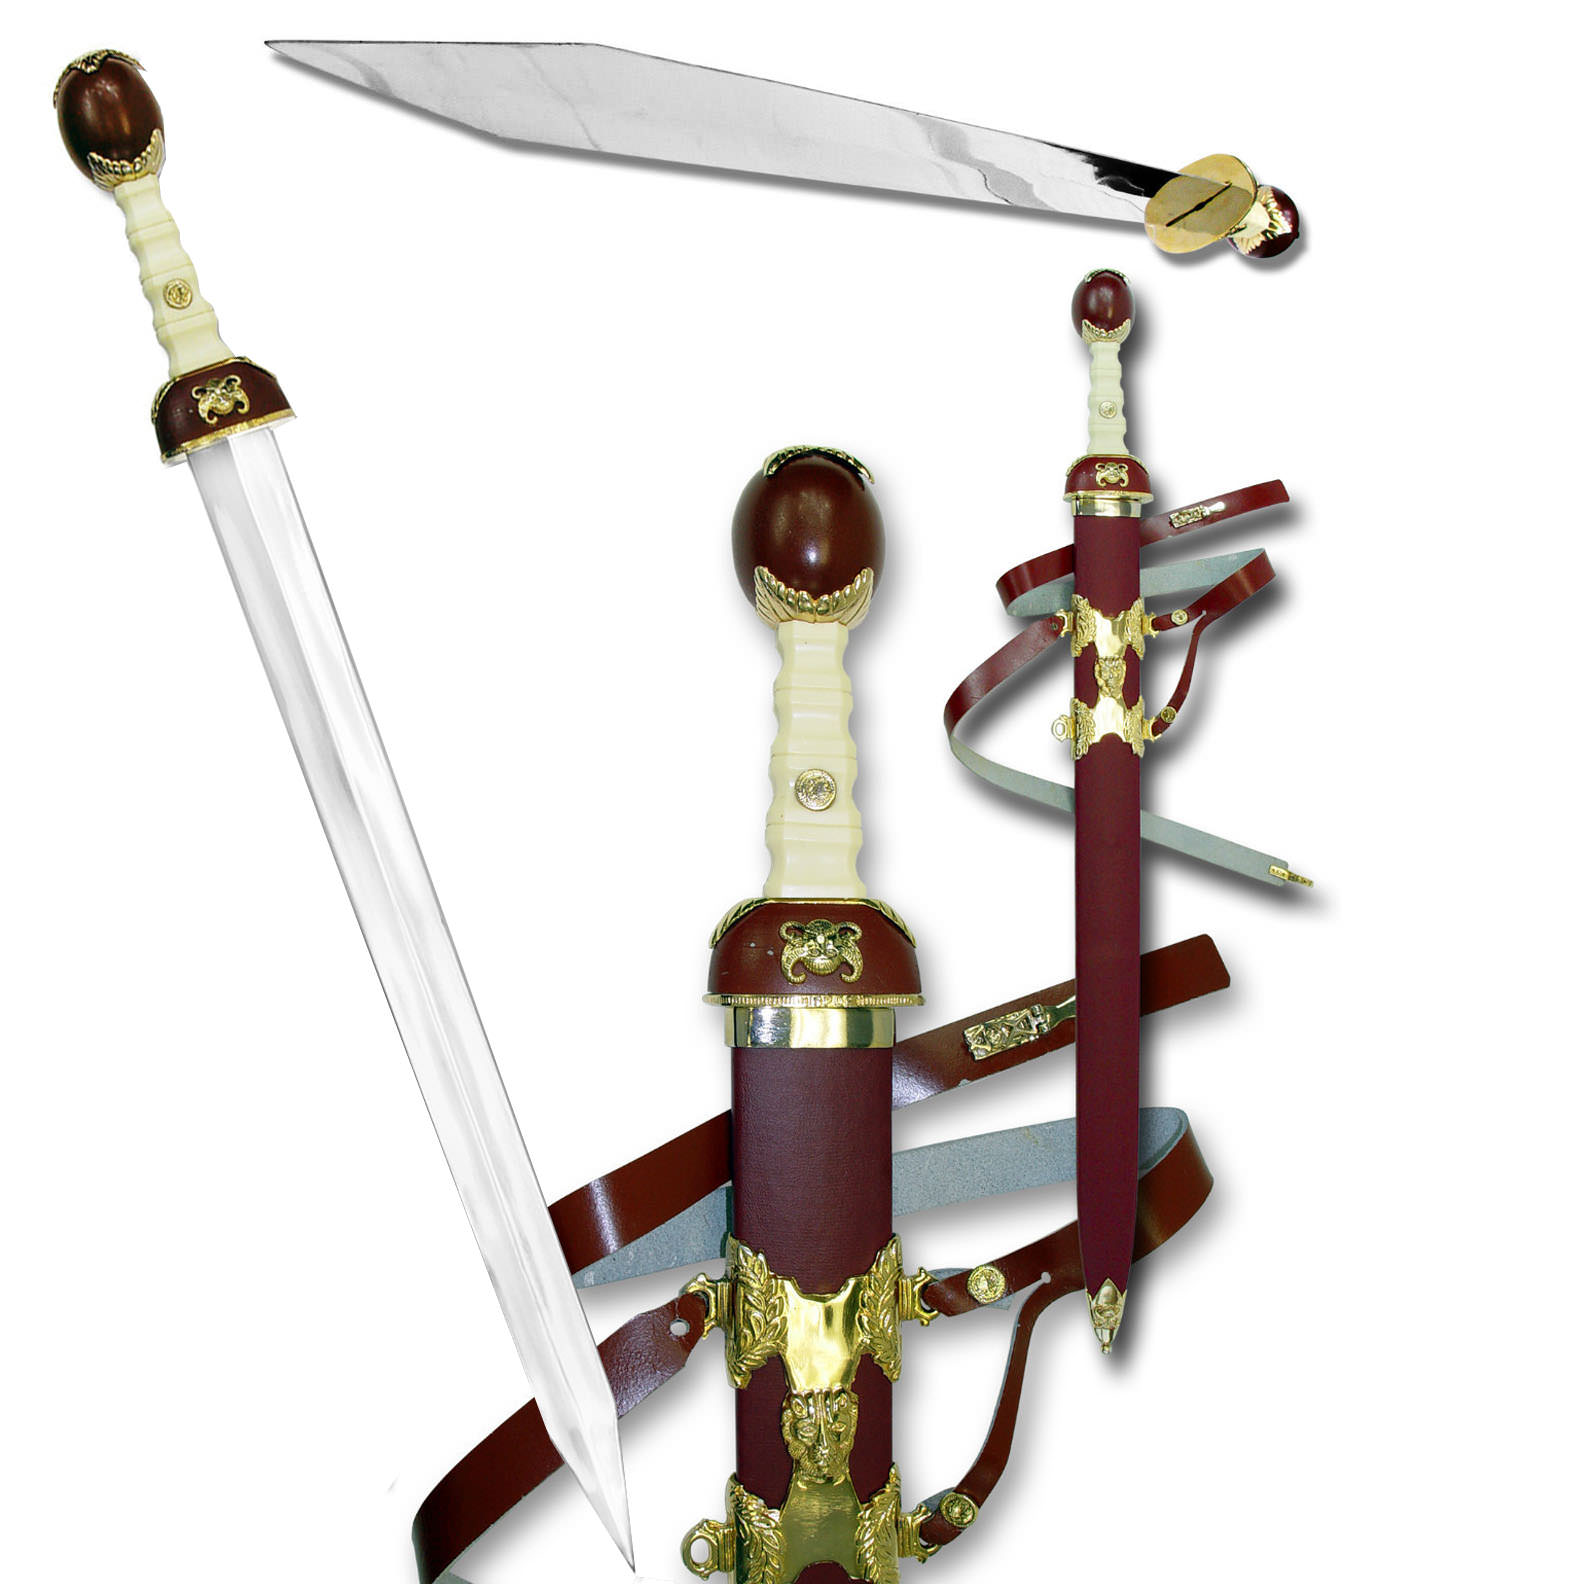 Gold Gladiator Sword 39""